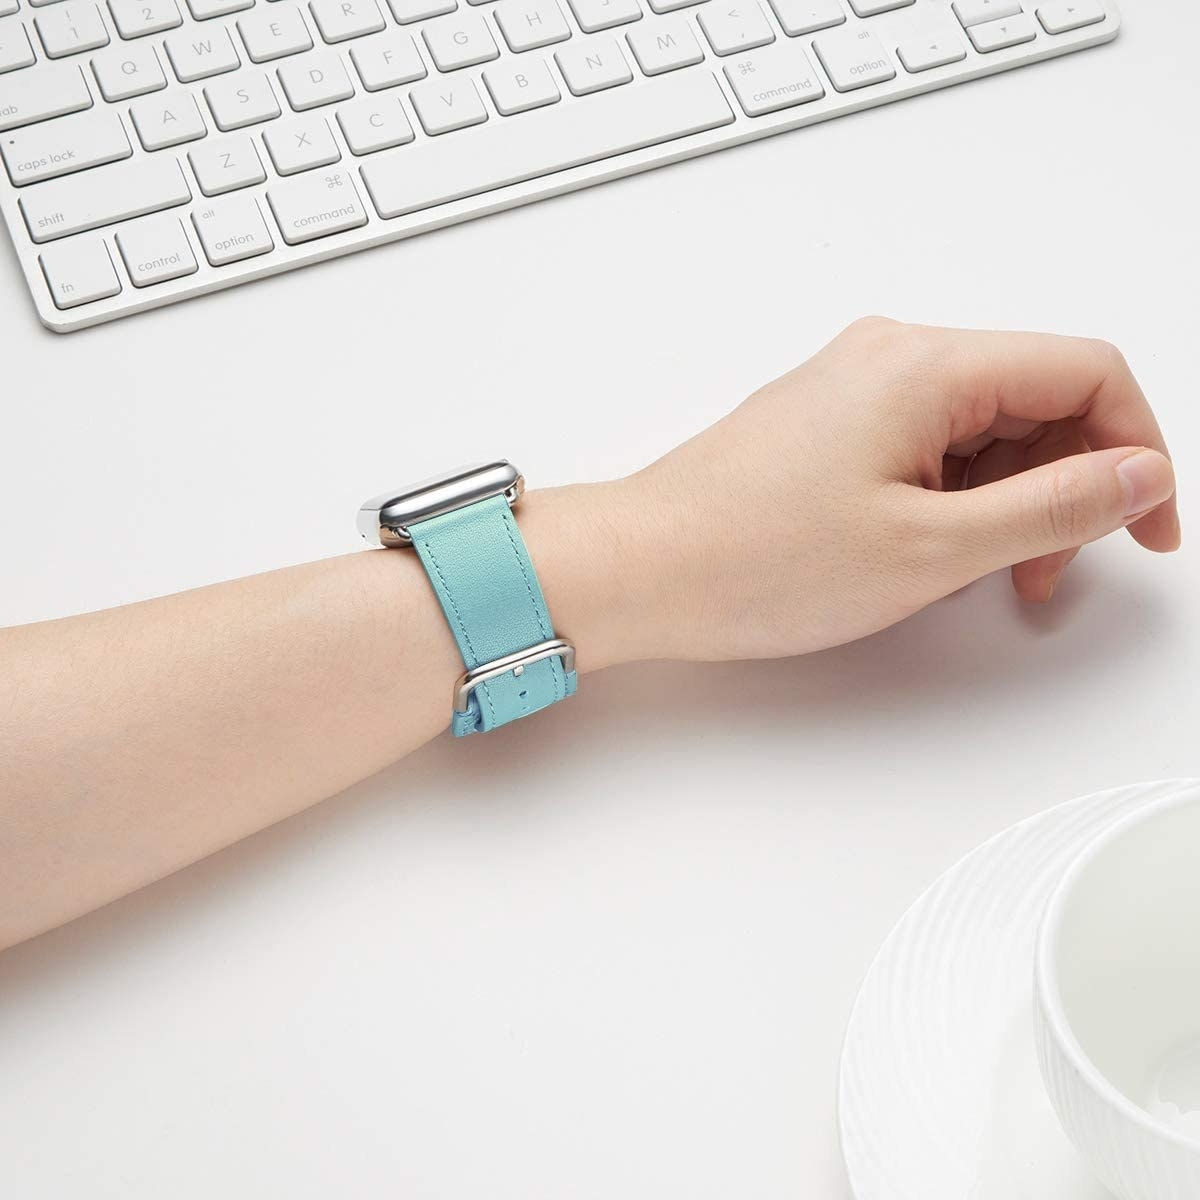 Model with a light blue Apple watch band around their wrist